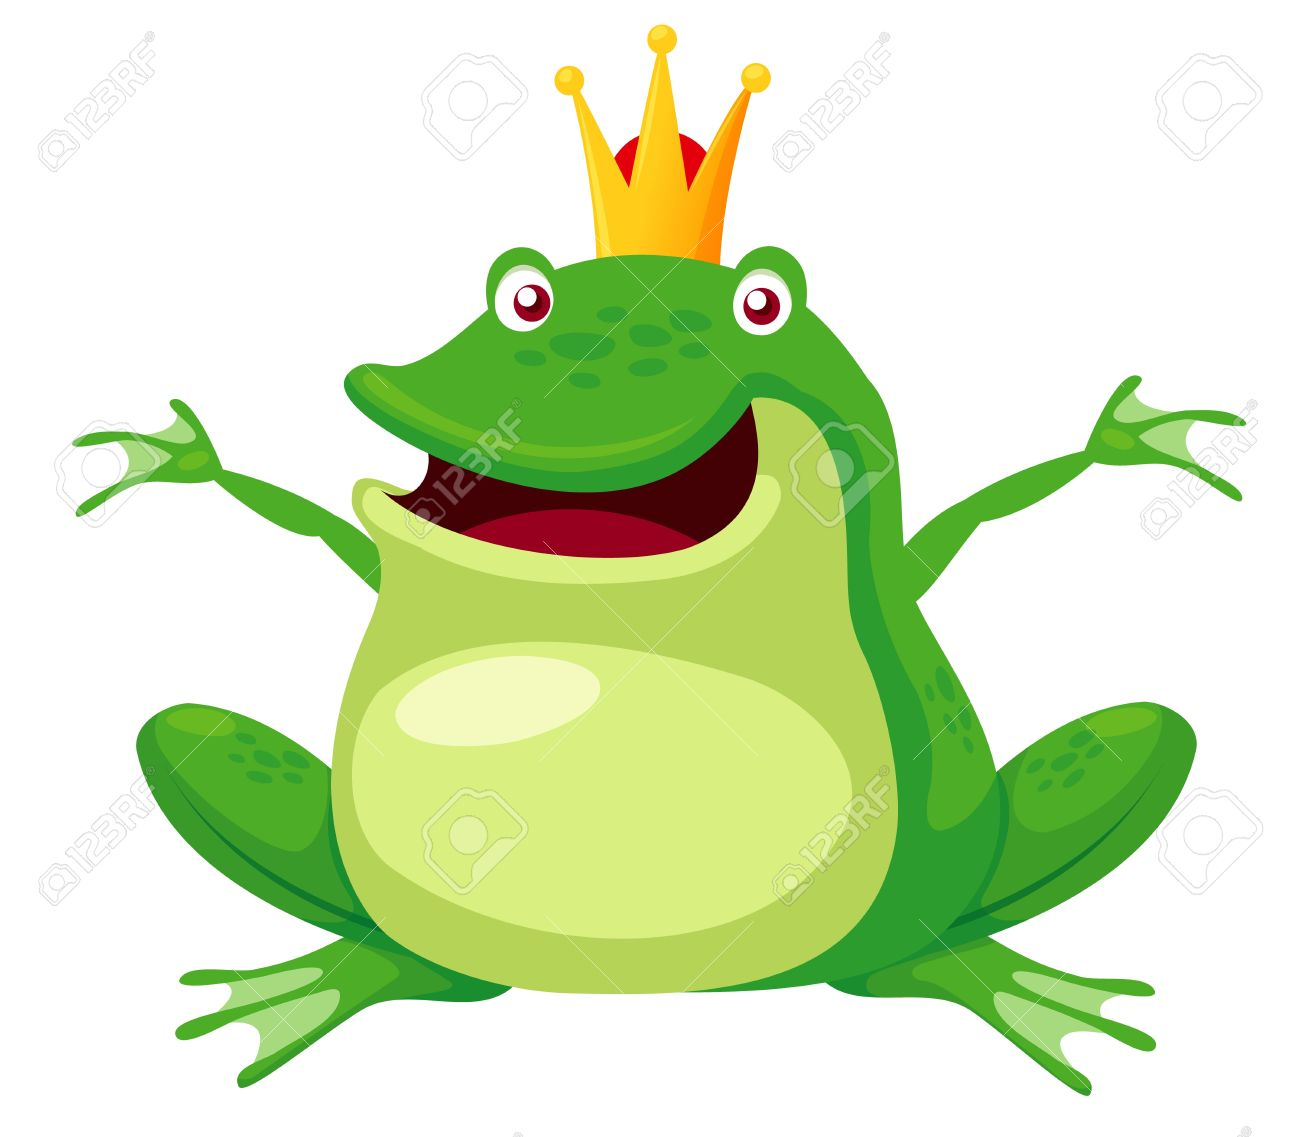 Frog With Crown Clipart.